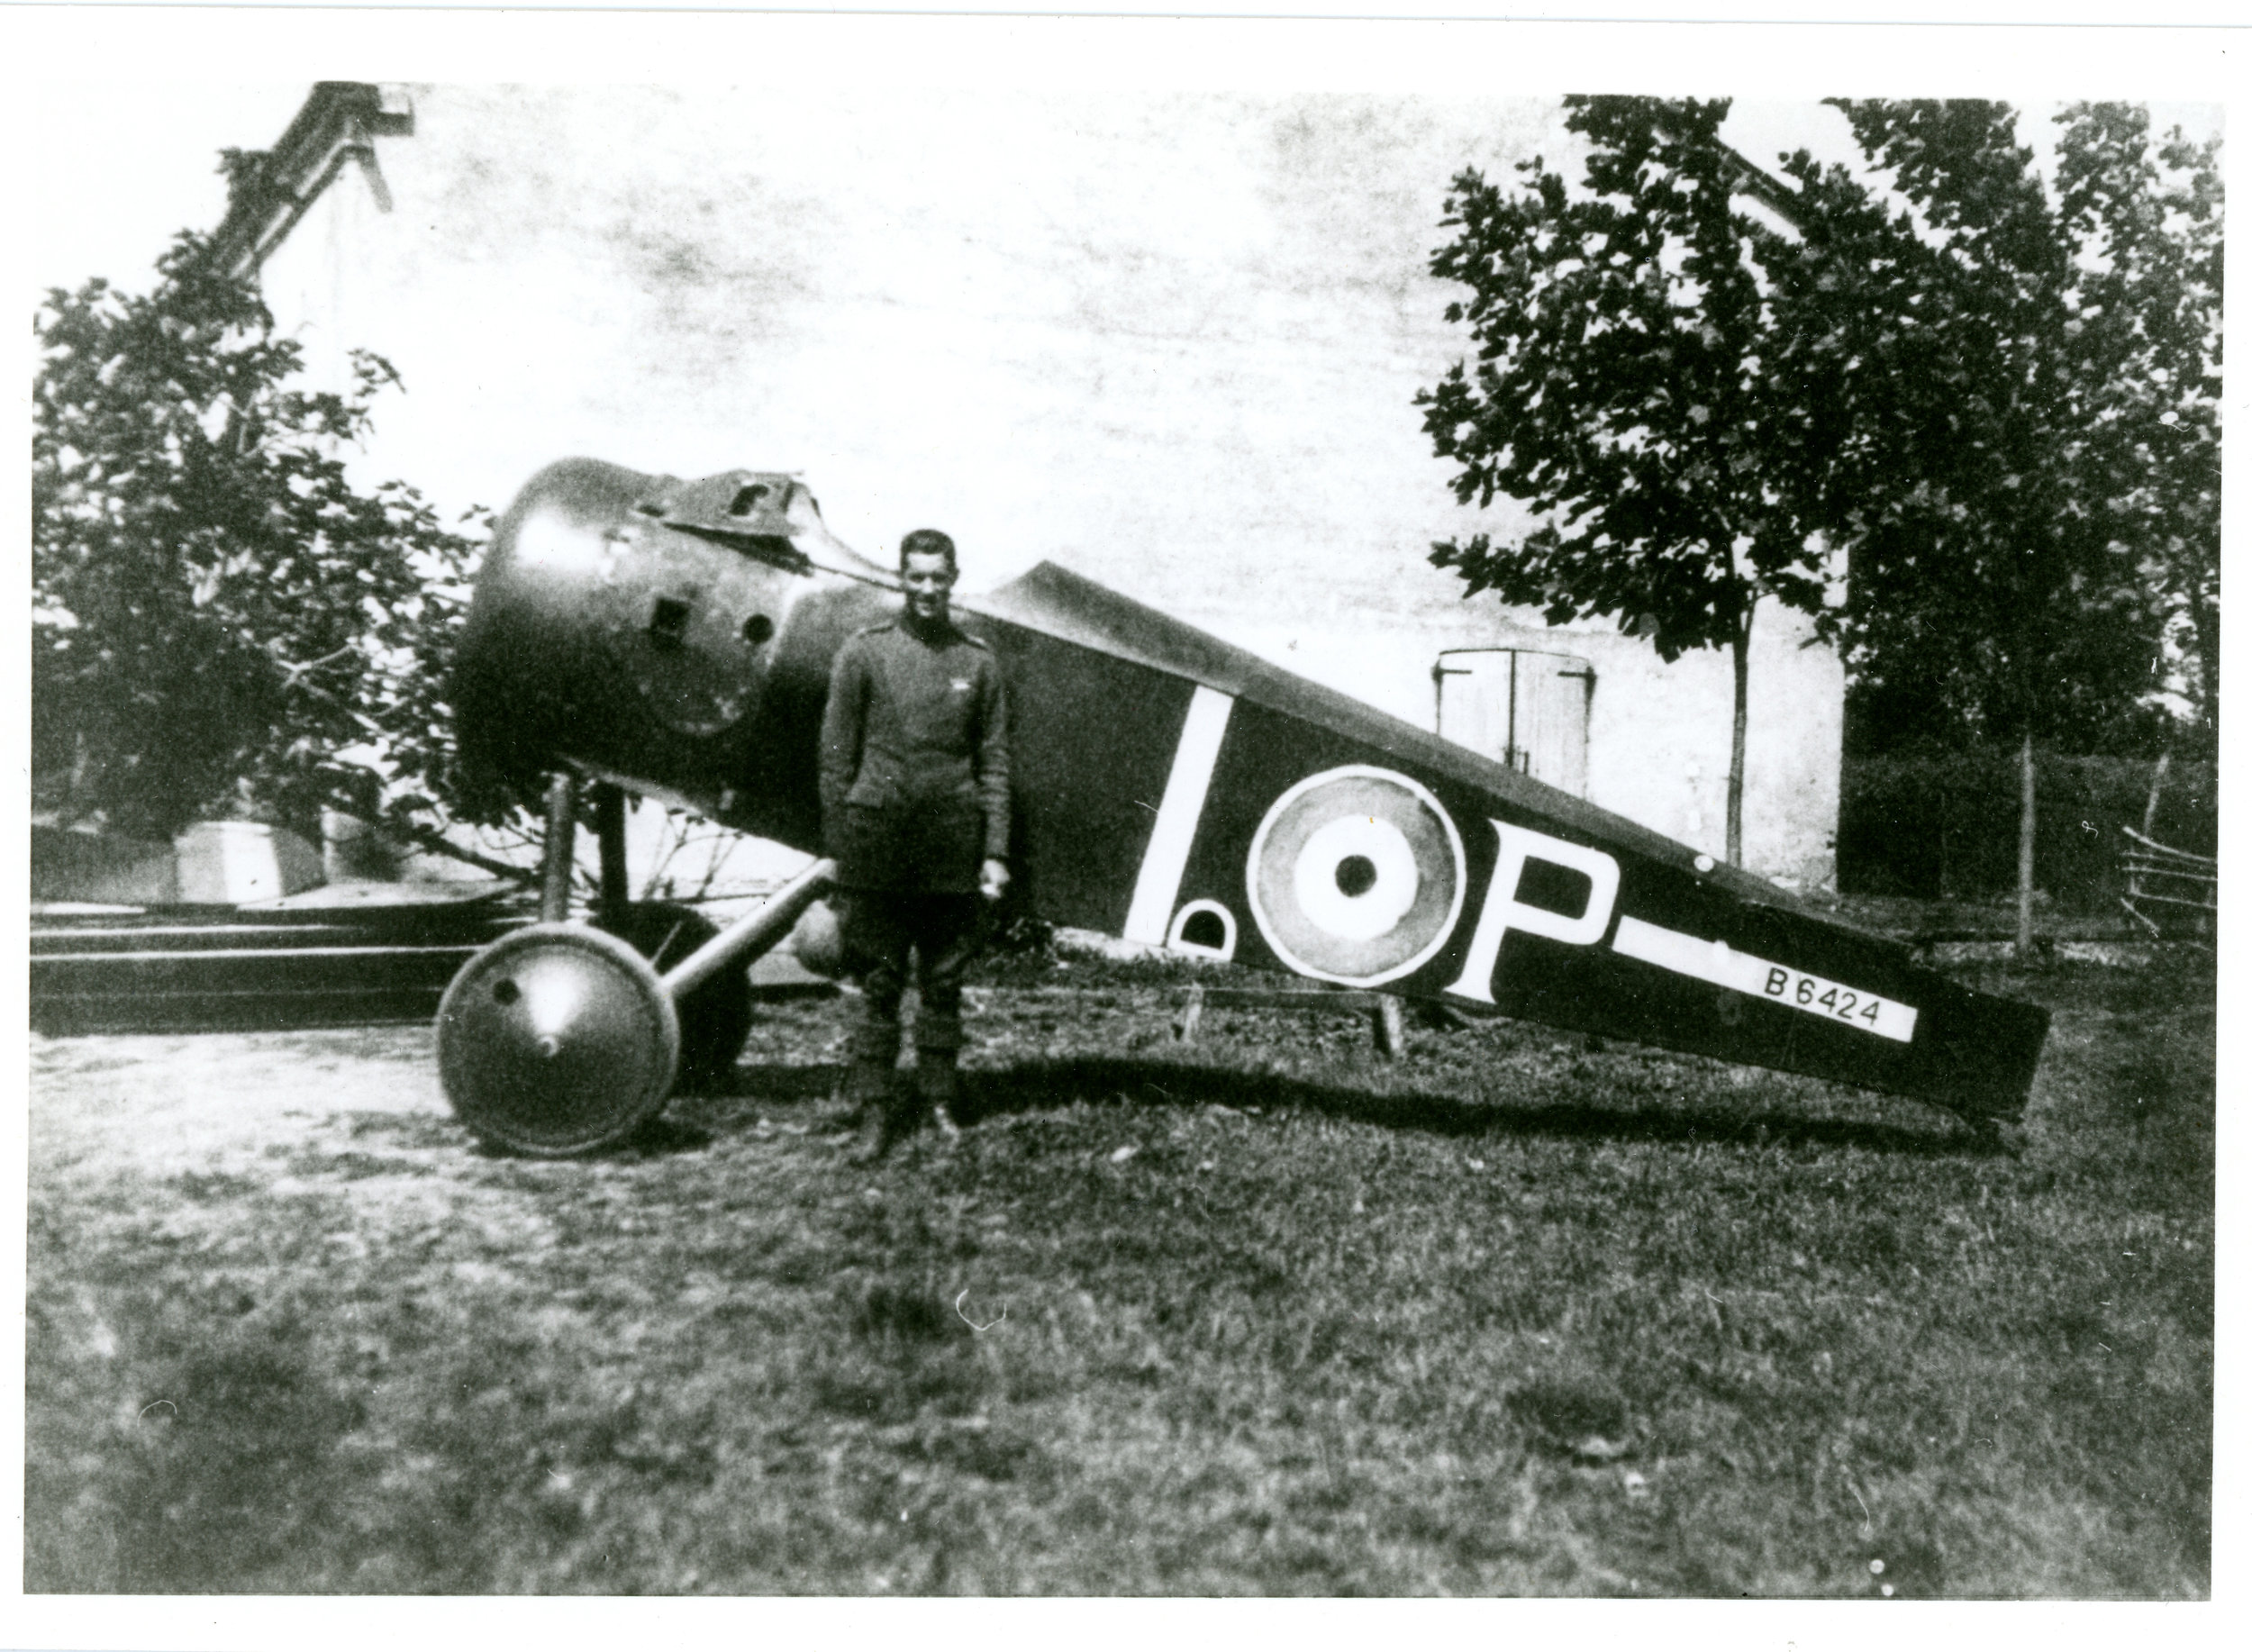 Newly arrived in San Pietro in Gu and yet to be assembled, Sopwith-built Camel B6424 was flown by Birks (standing before it) to score five victories from March to May 1918, including Austro-Hungarian aces Karl Patzelt (5 victories, pictured at left) and József Kiss (19). (gerald birks via jon guttman)